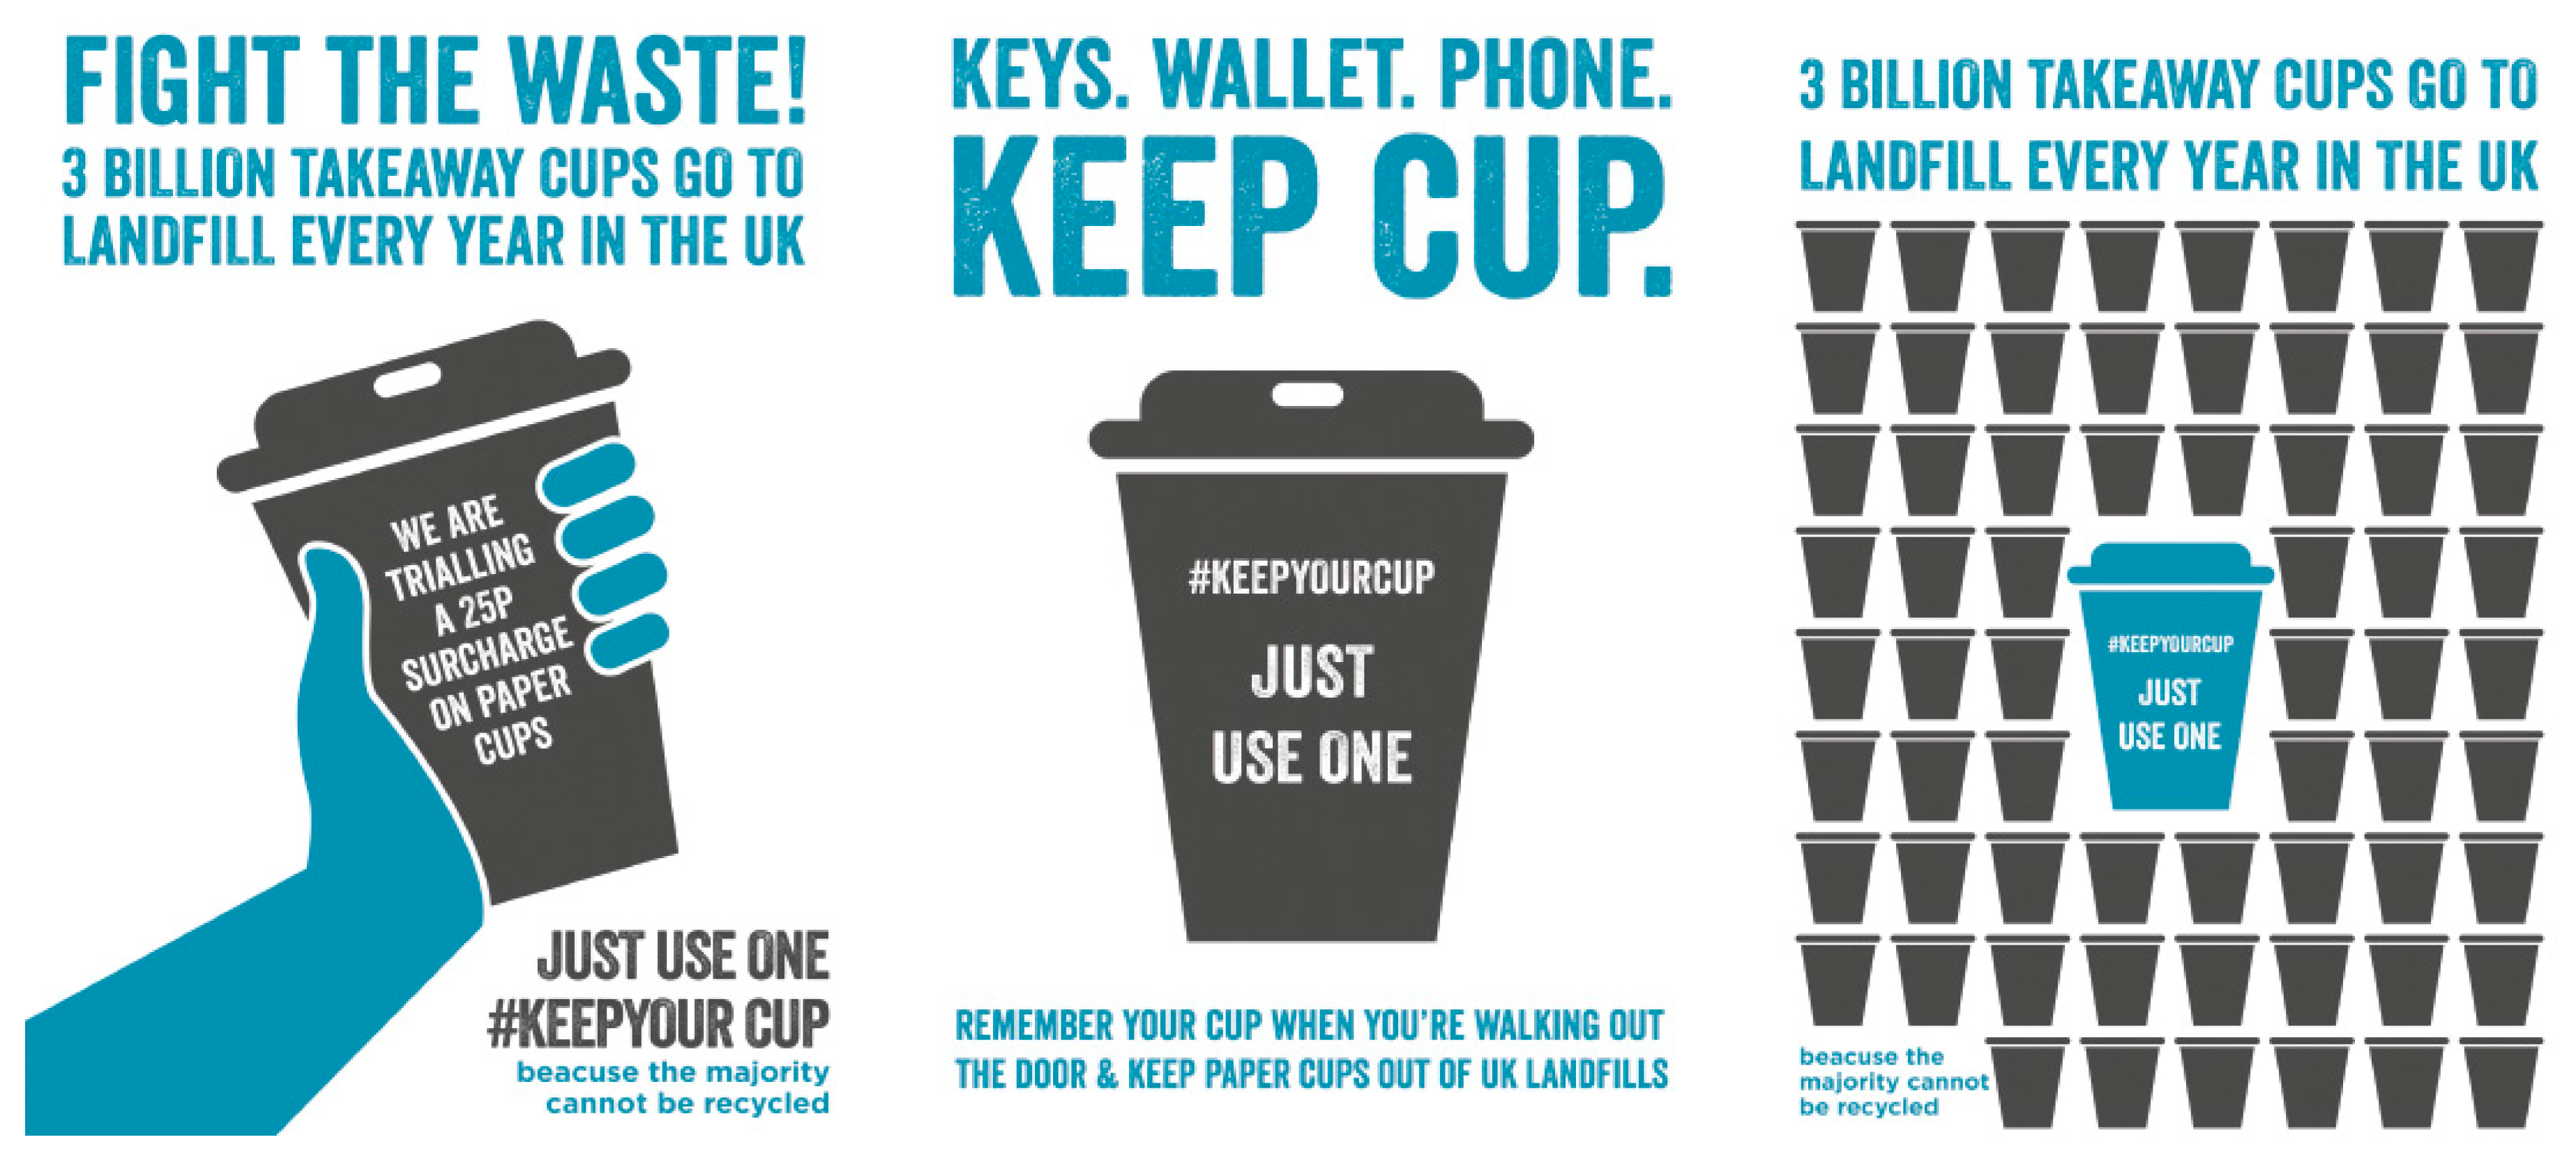 Sustainability Free Full Text Promoting The Use Of Reusable Coffee Cups Through Environmental Messaging The Provision Of Alternatives And Financial Incentives Html